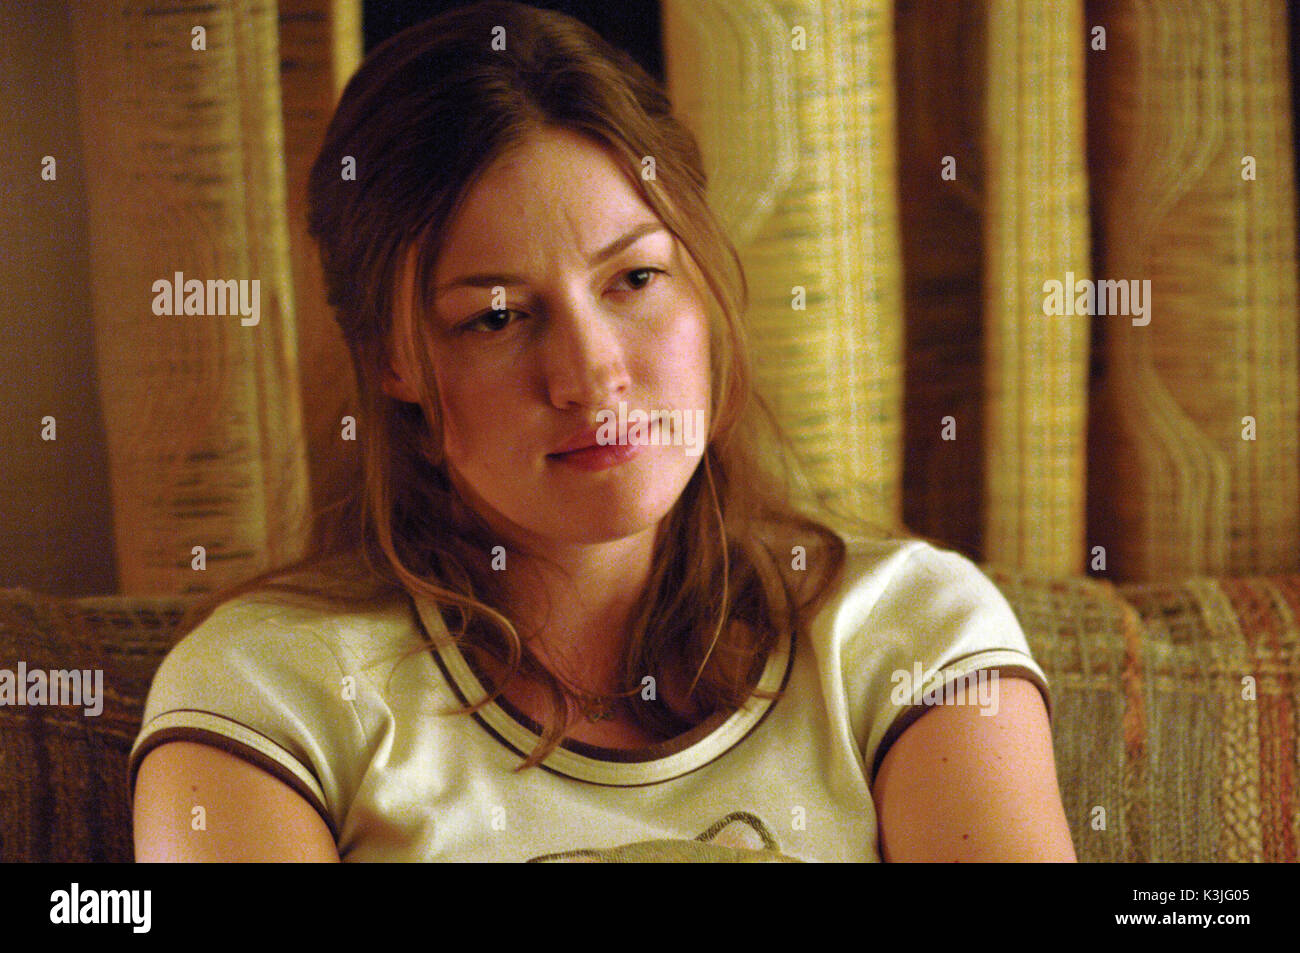 No Country For Old Men Kelly Macdonald No Country For Old Men Stock Photo Alamy